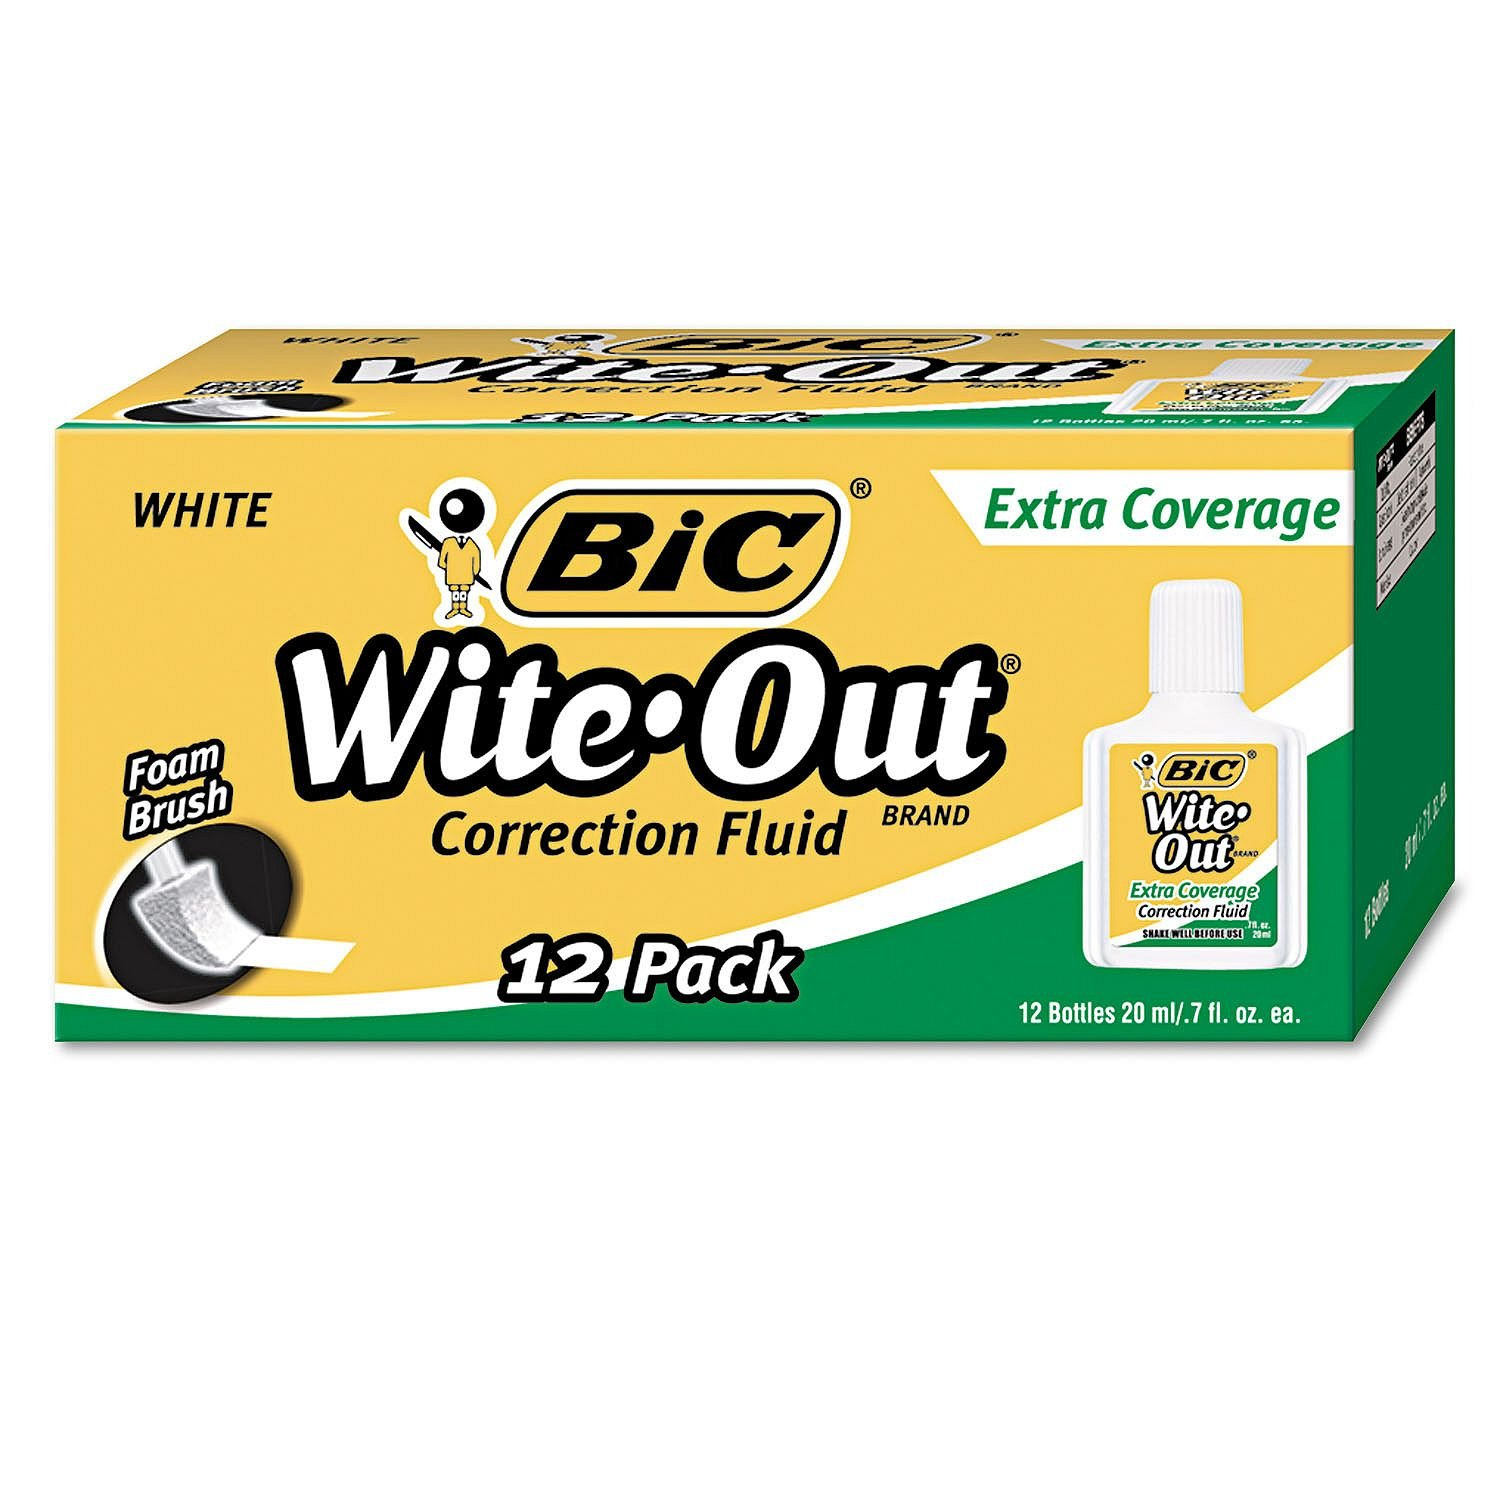 BICÂ Wite-Out Extra Coverage Correction Fluid, 20 ml Bottle, White, 12pk. - (Original from manufacturer - Bulk Discount available)